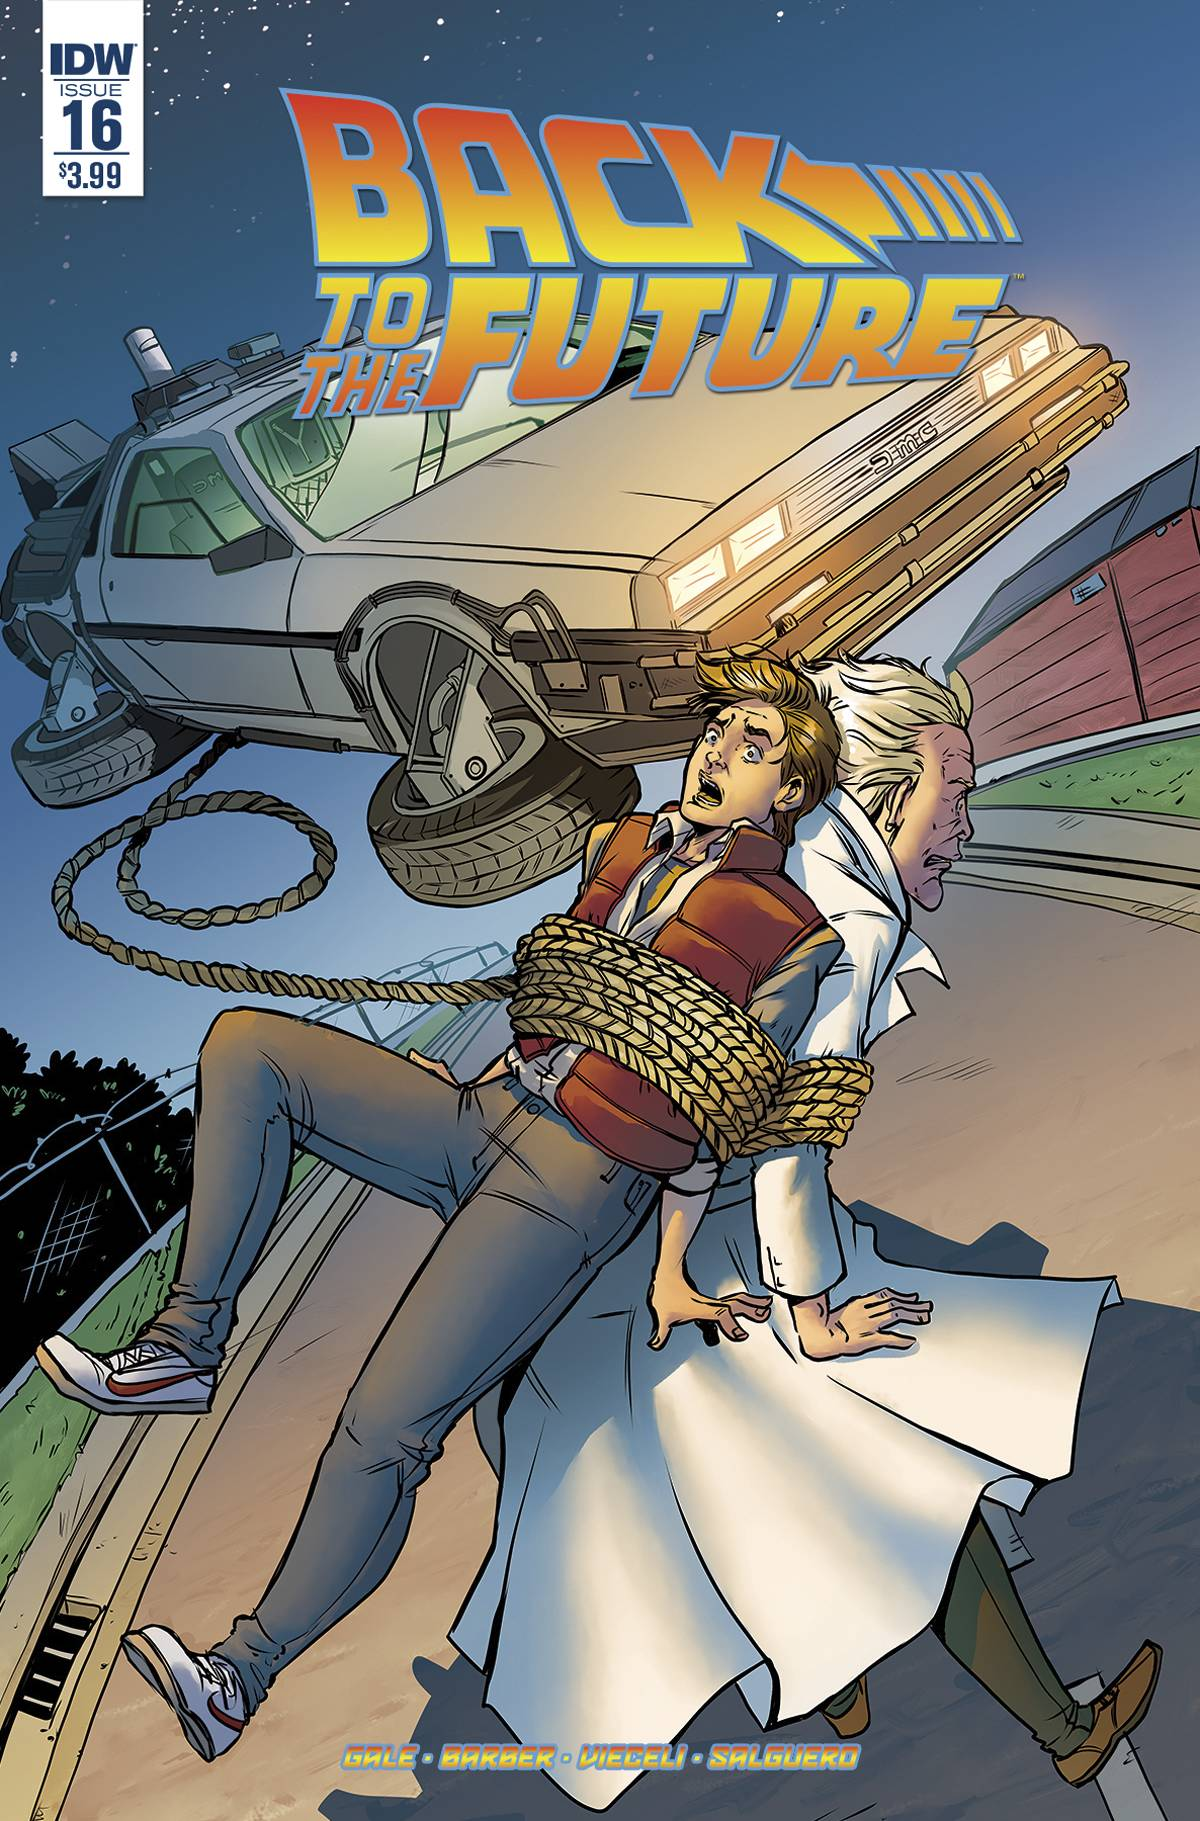 New Comics Titles For This Week